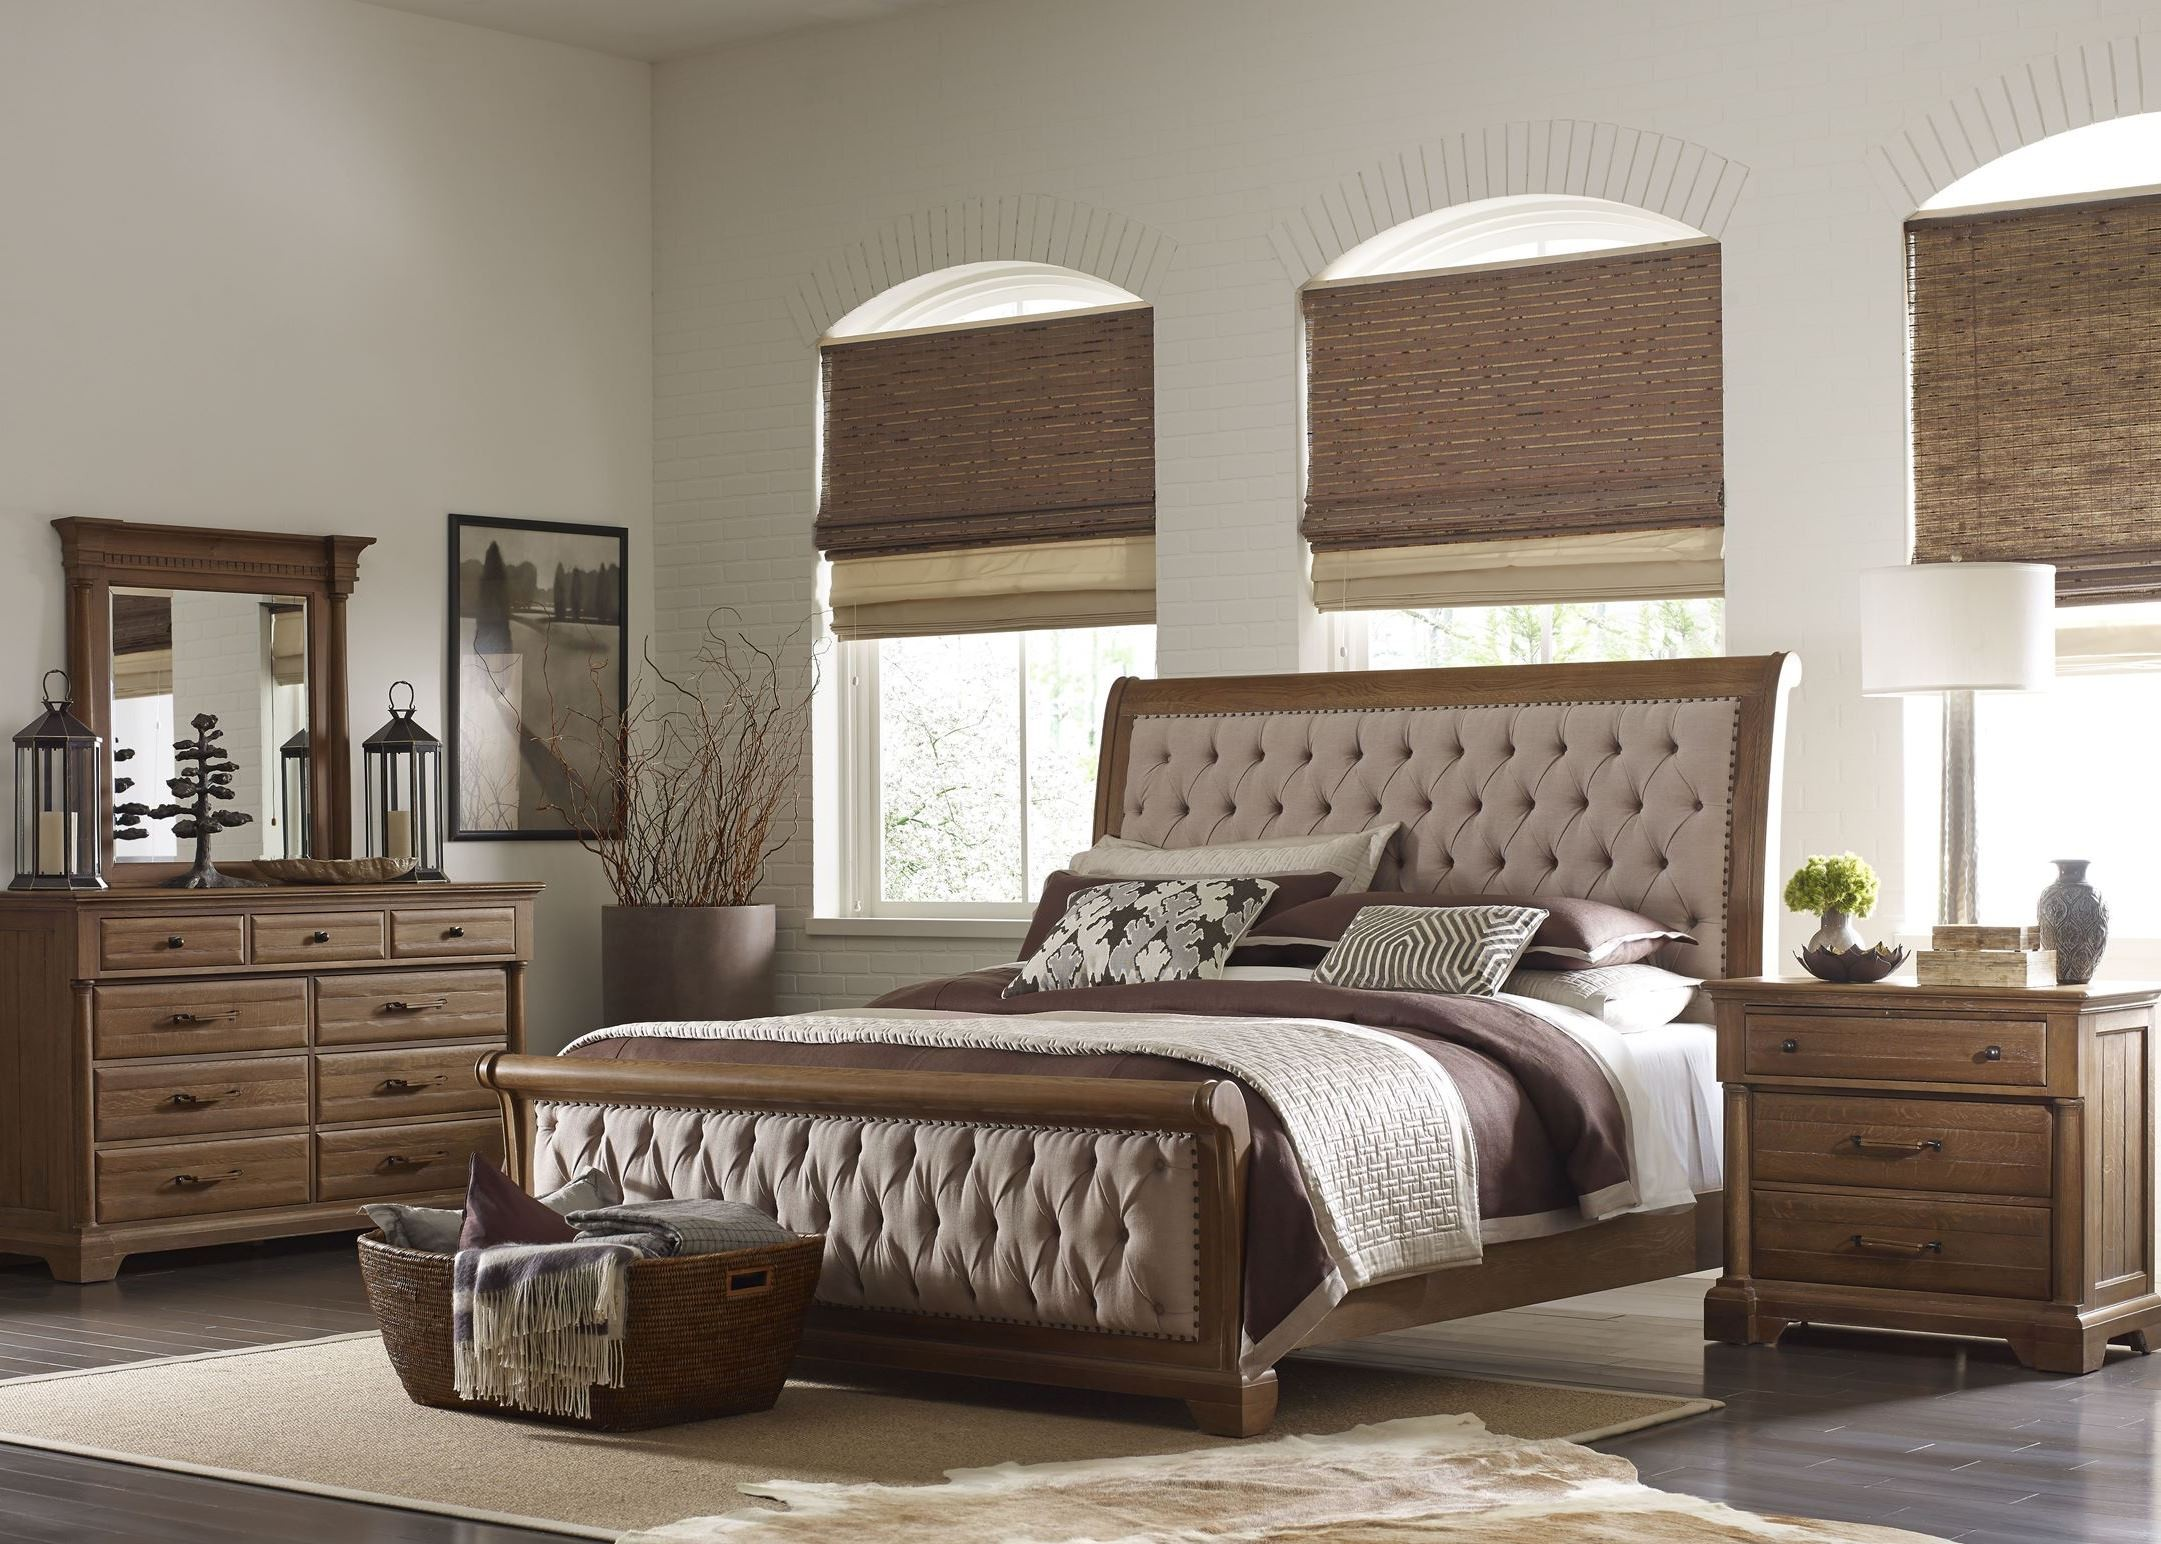 Stone bedroom furniture 28 images stone bedroom furniture theme design and decor ideas lake Lake home bedroom furniture